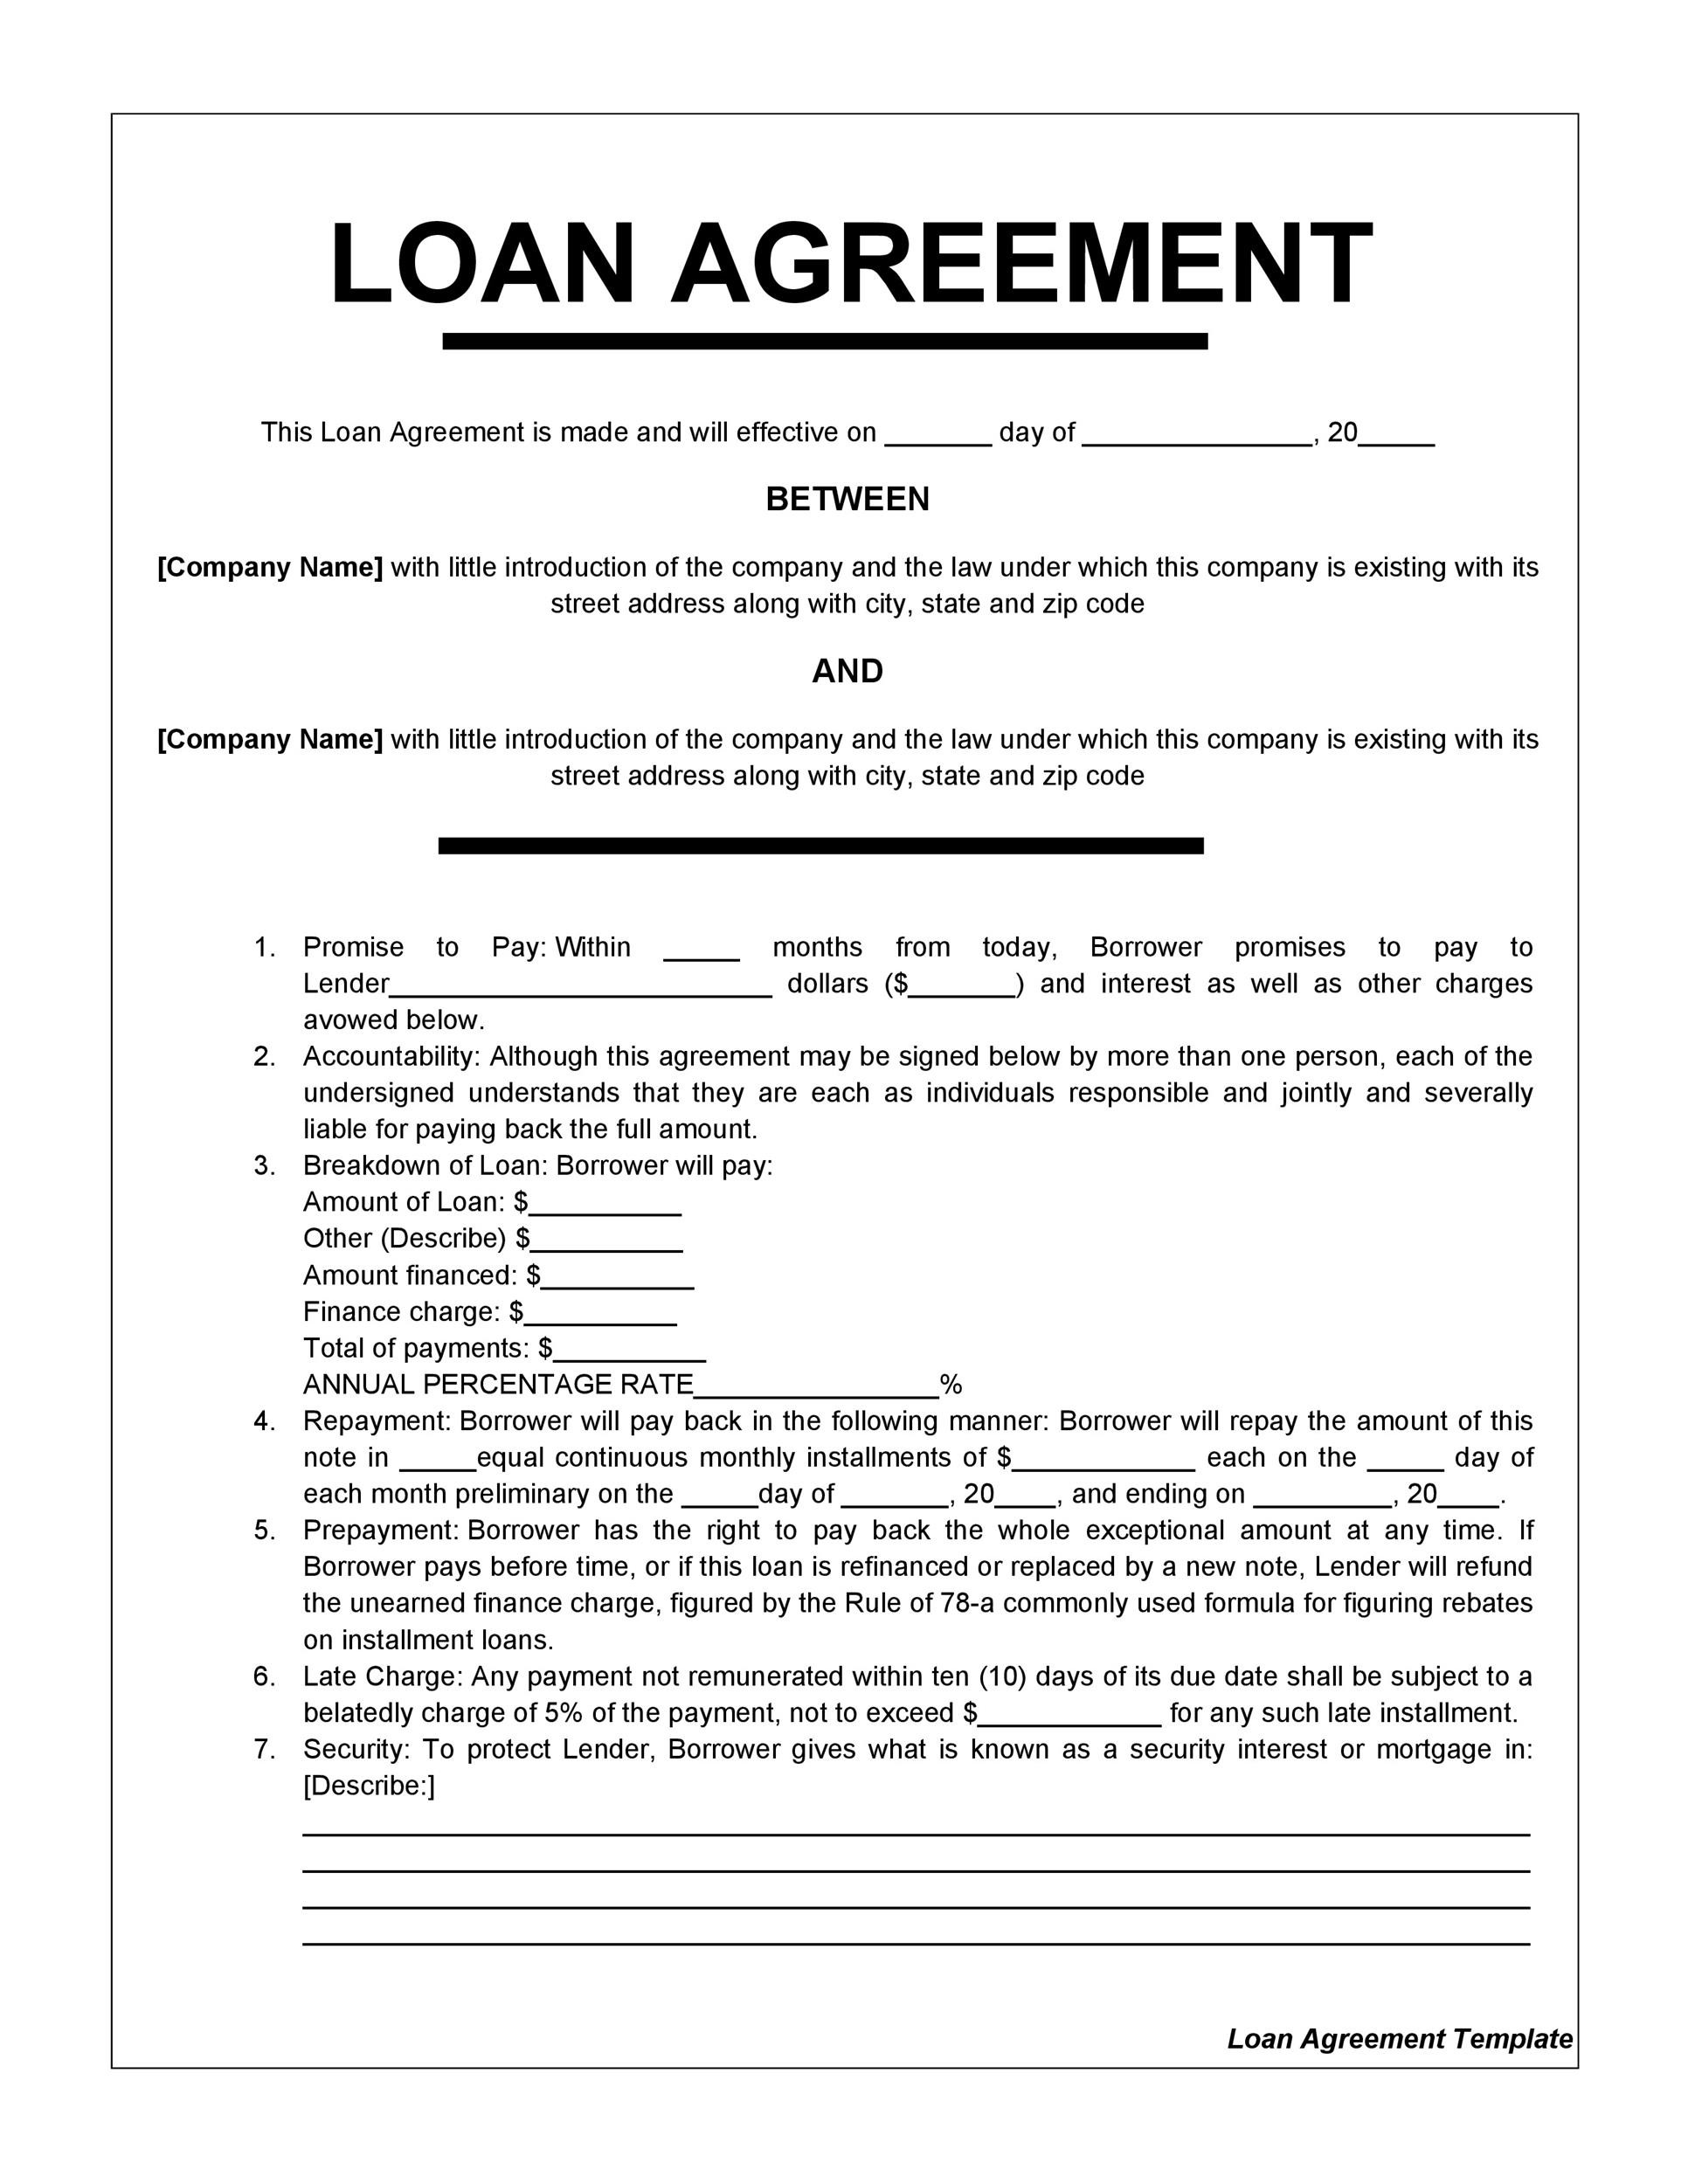 Personal Loan Agreement Template